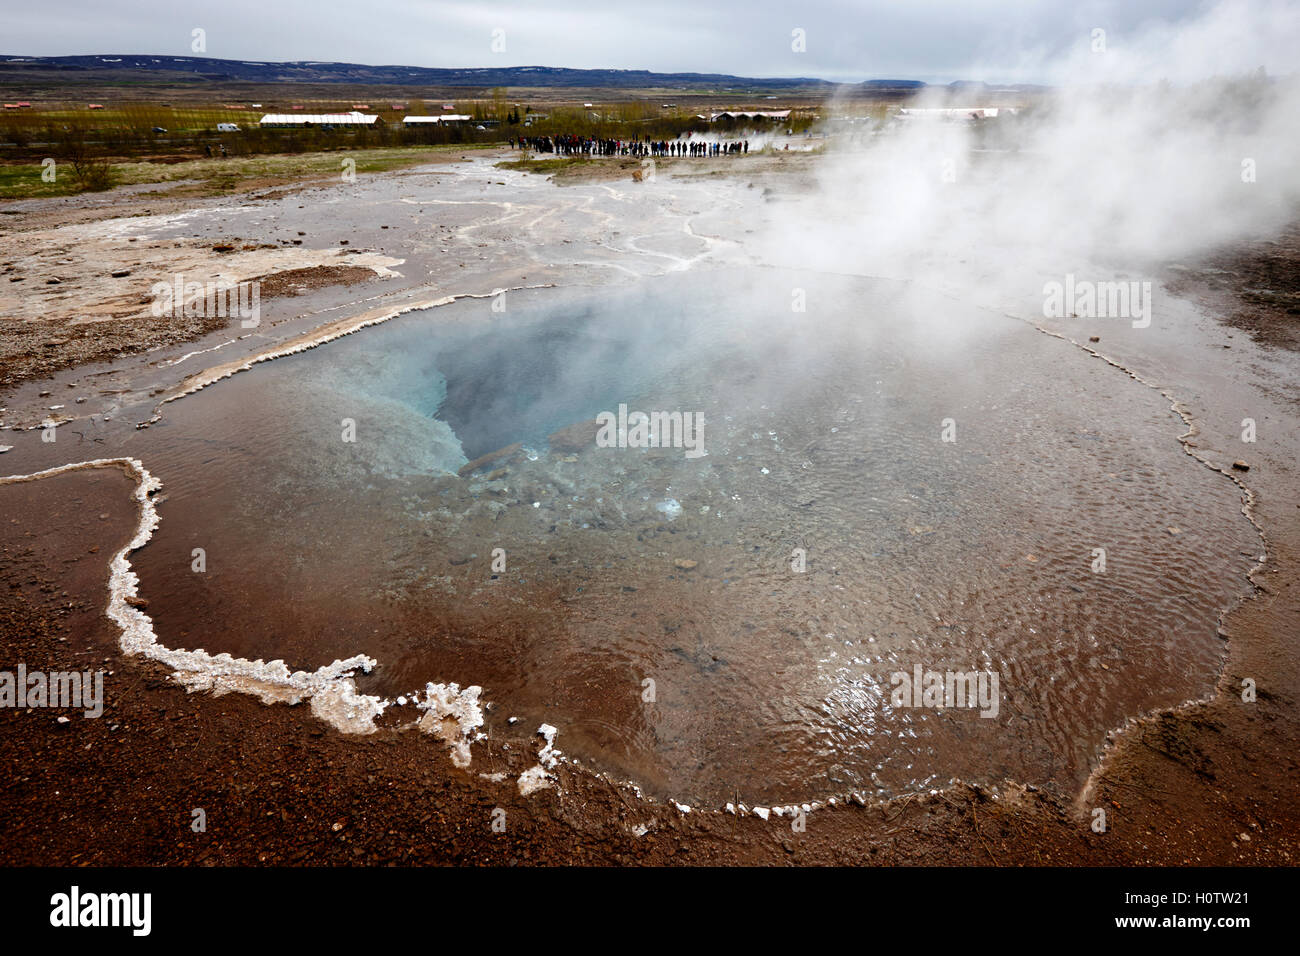 steam rising from the great geyser geysir Iceland - Stock Image